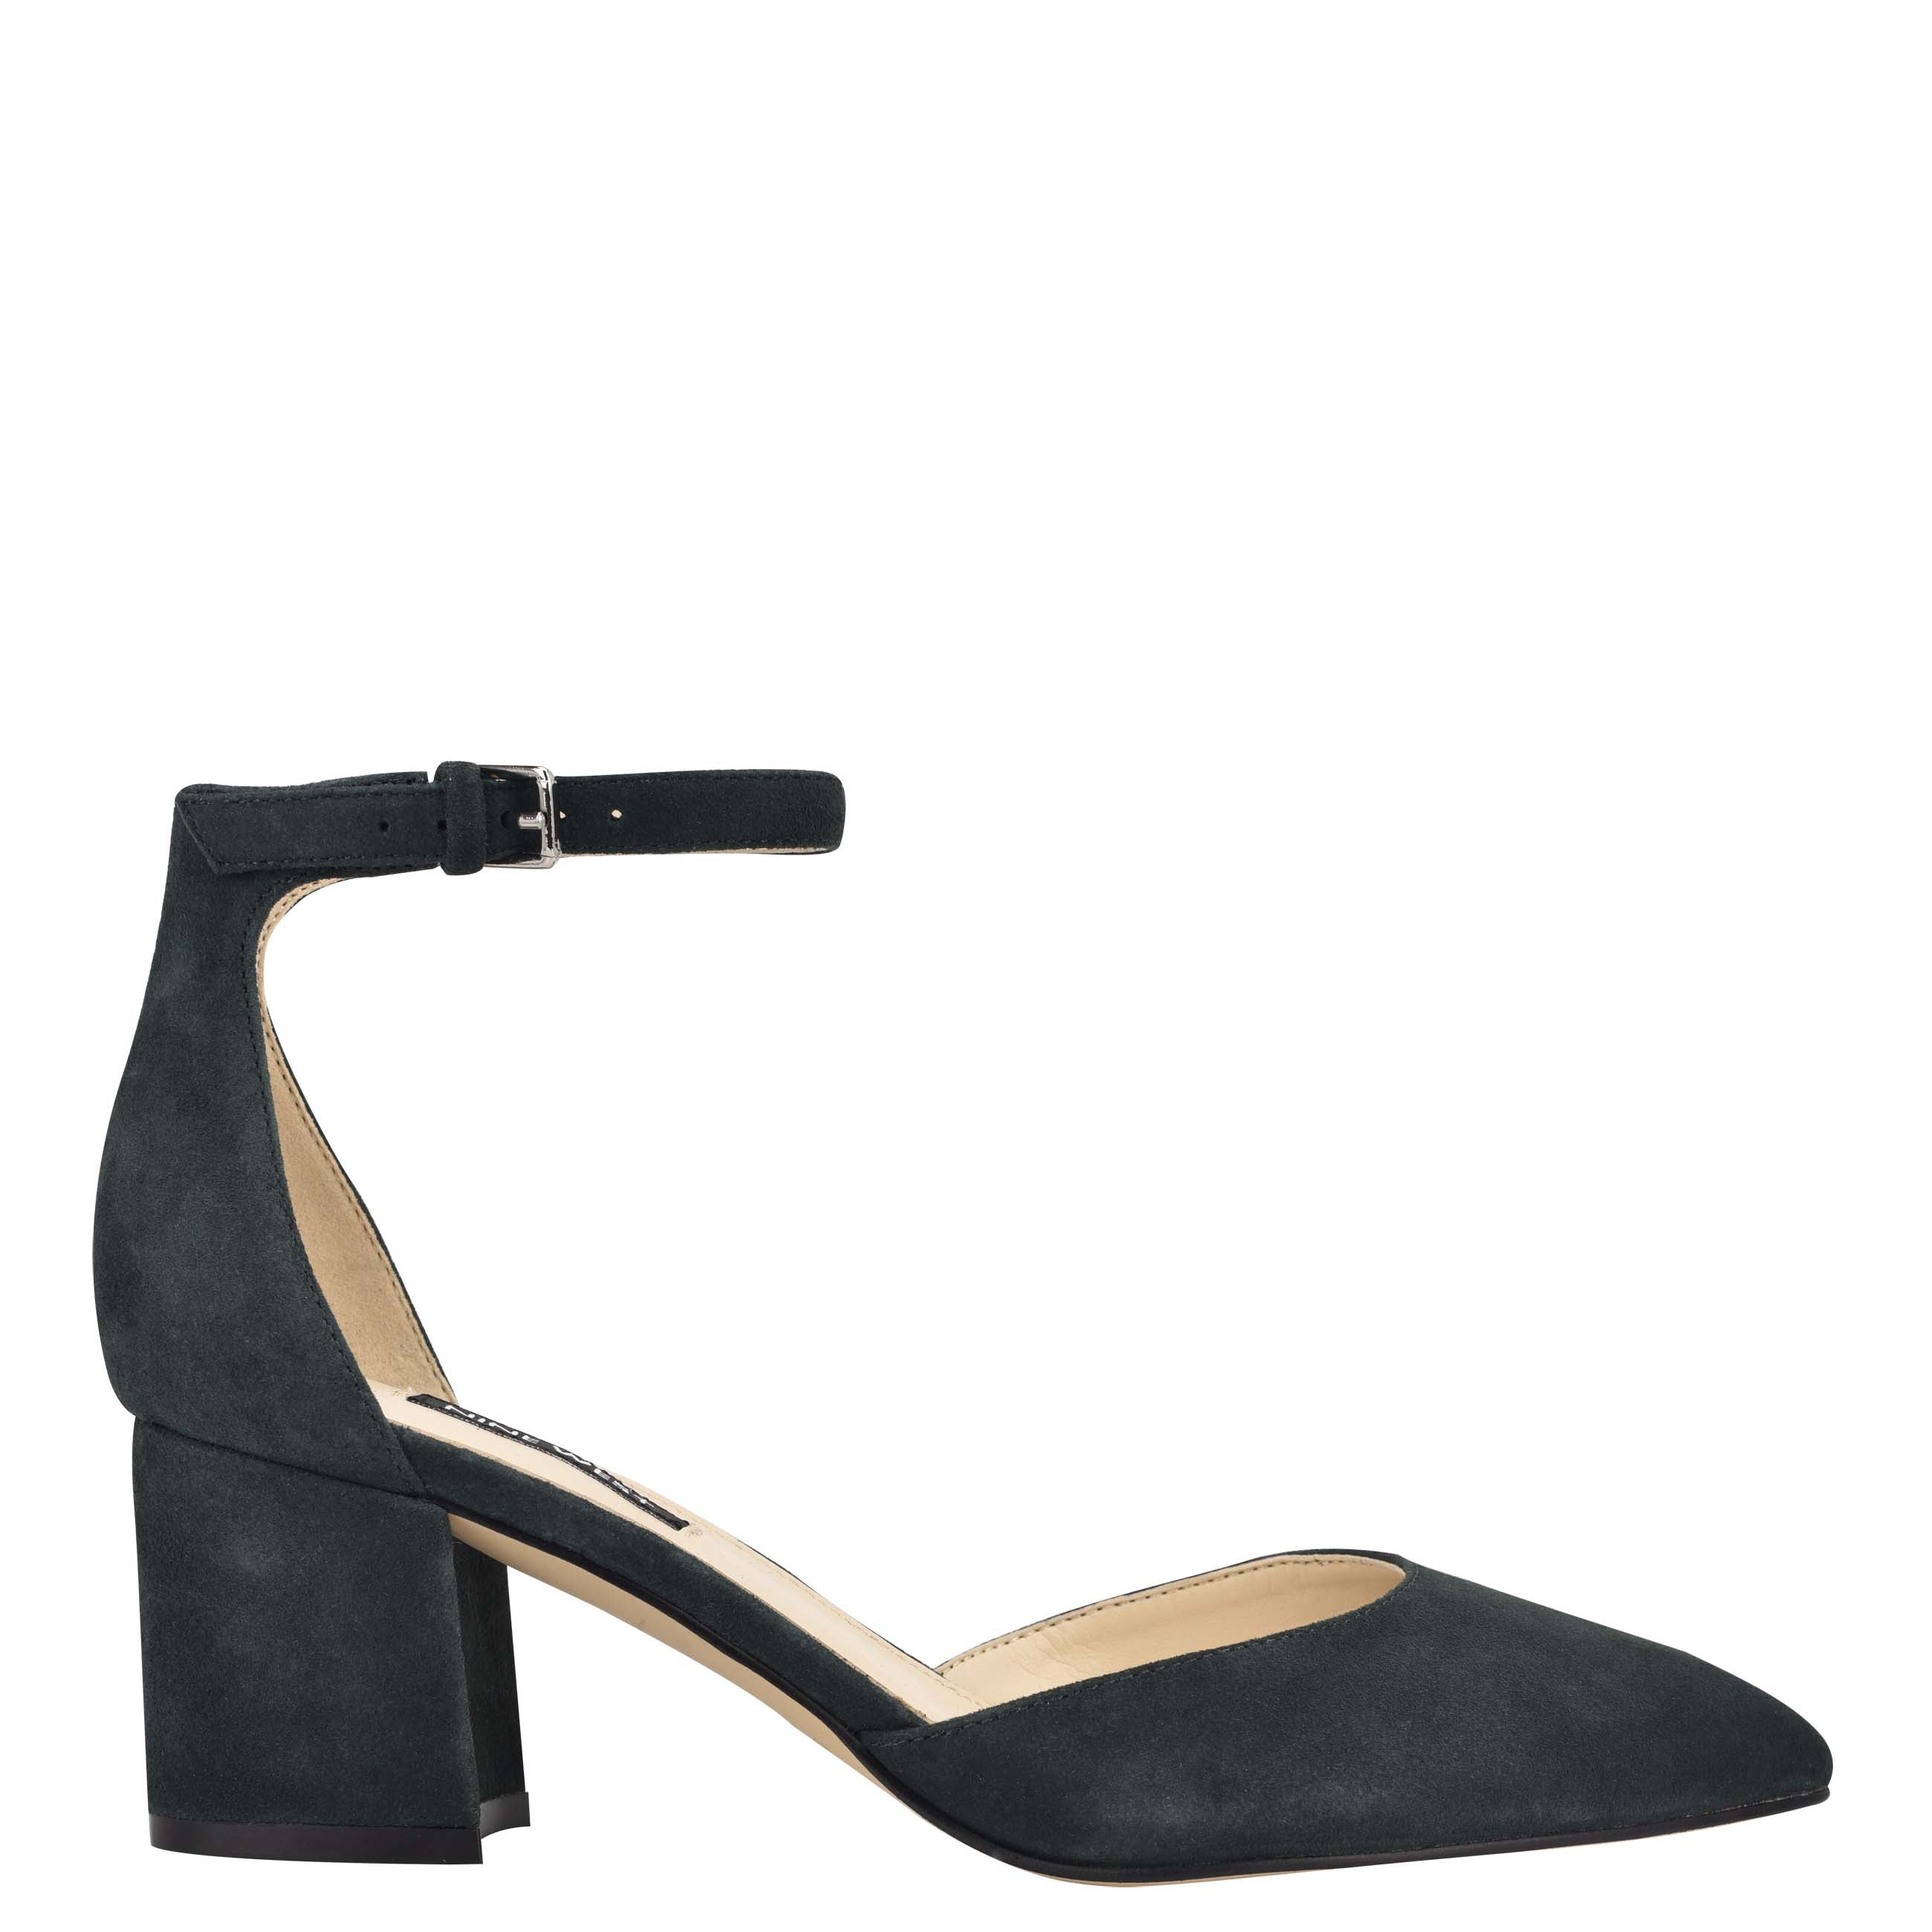 NINEWEST Trini Ankle Strap Block Heel Pumps